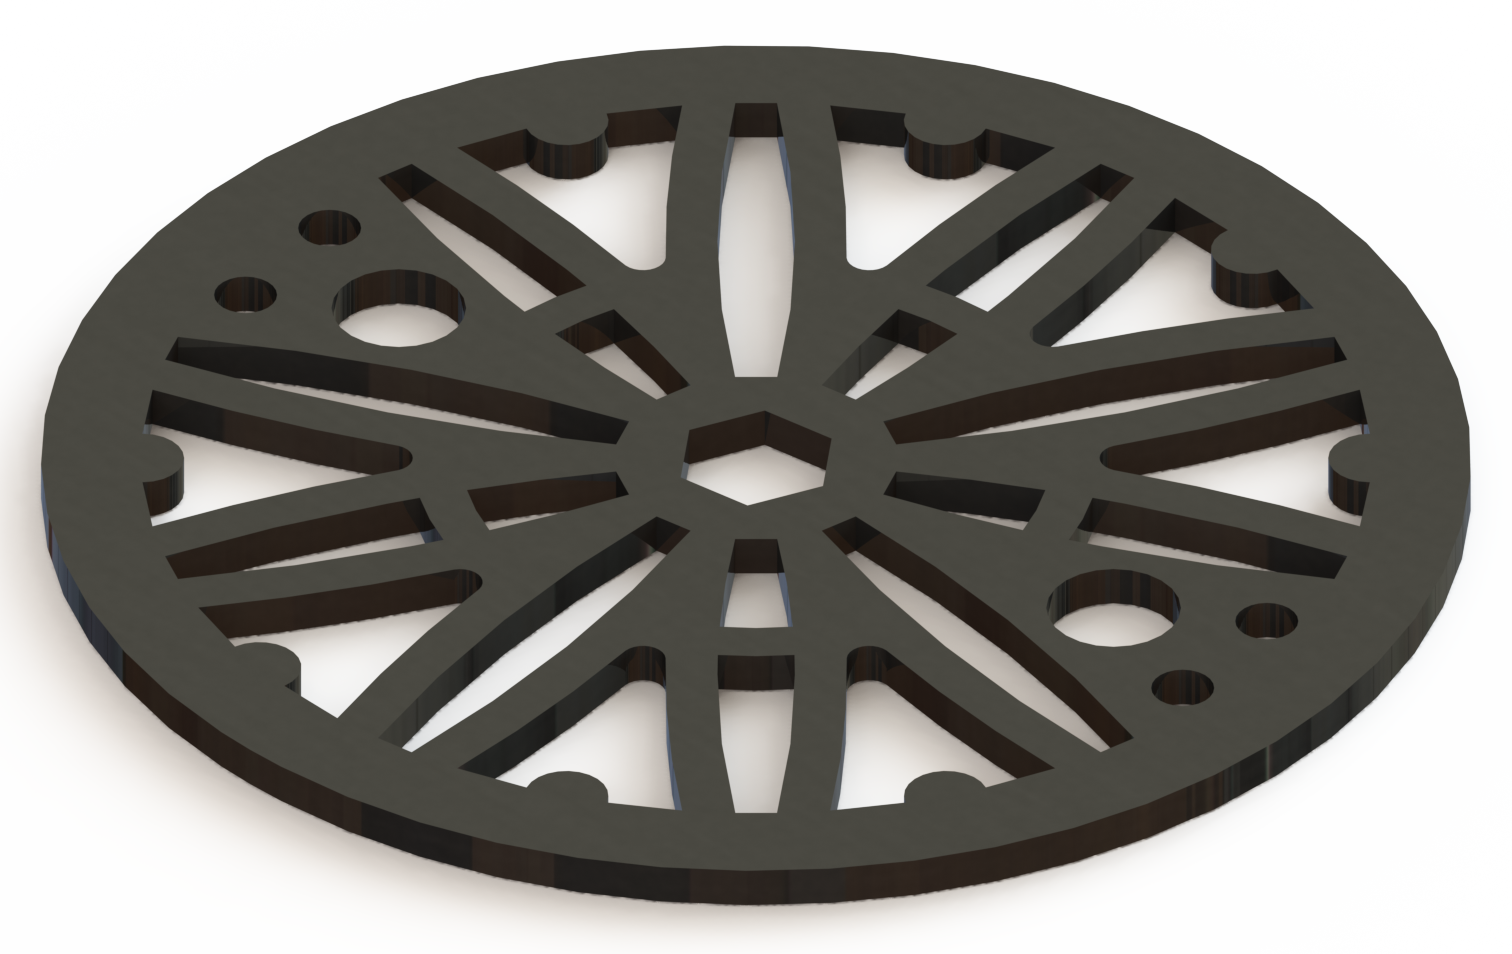 4.25in Custom Decorative Drain Cover Design - 6a